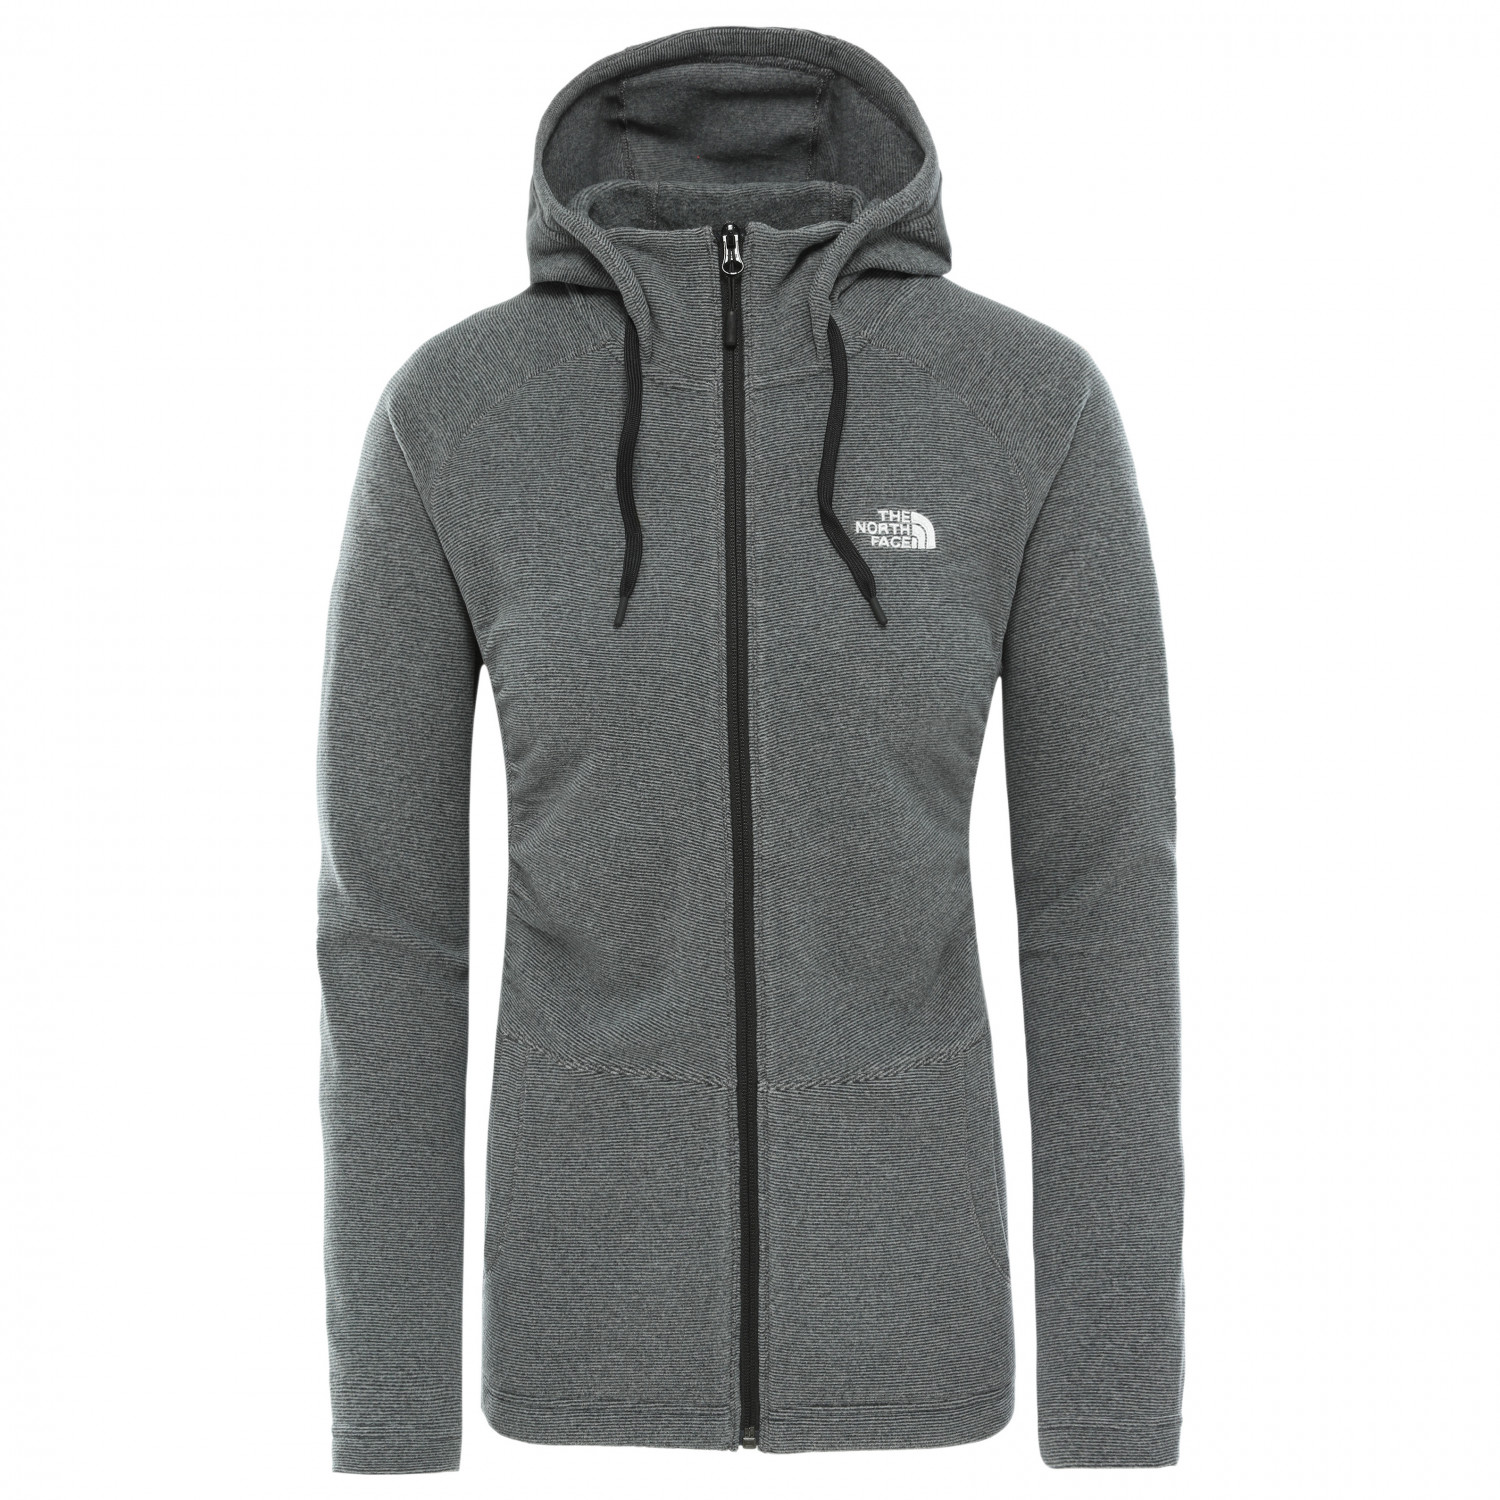 the north face tnf fleece jacke hoodie